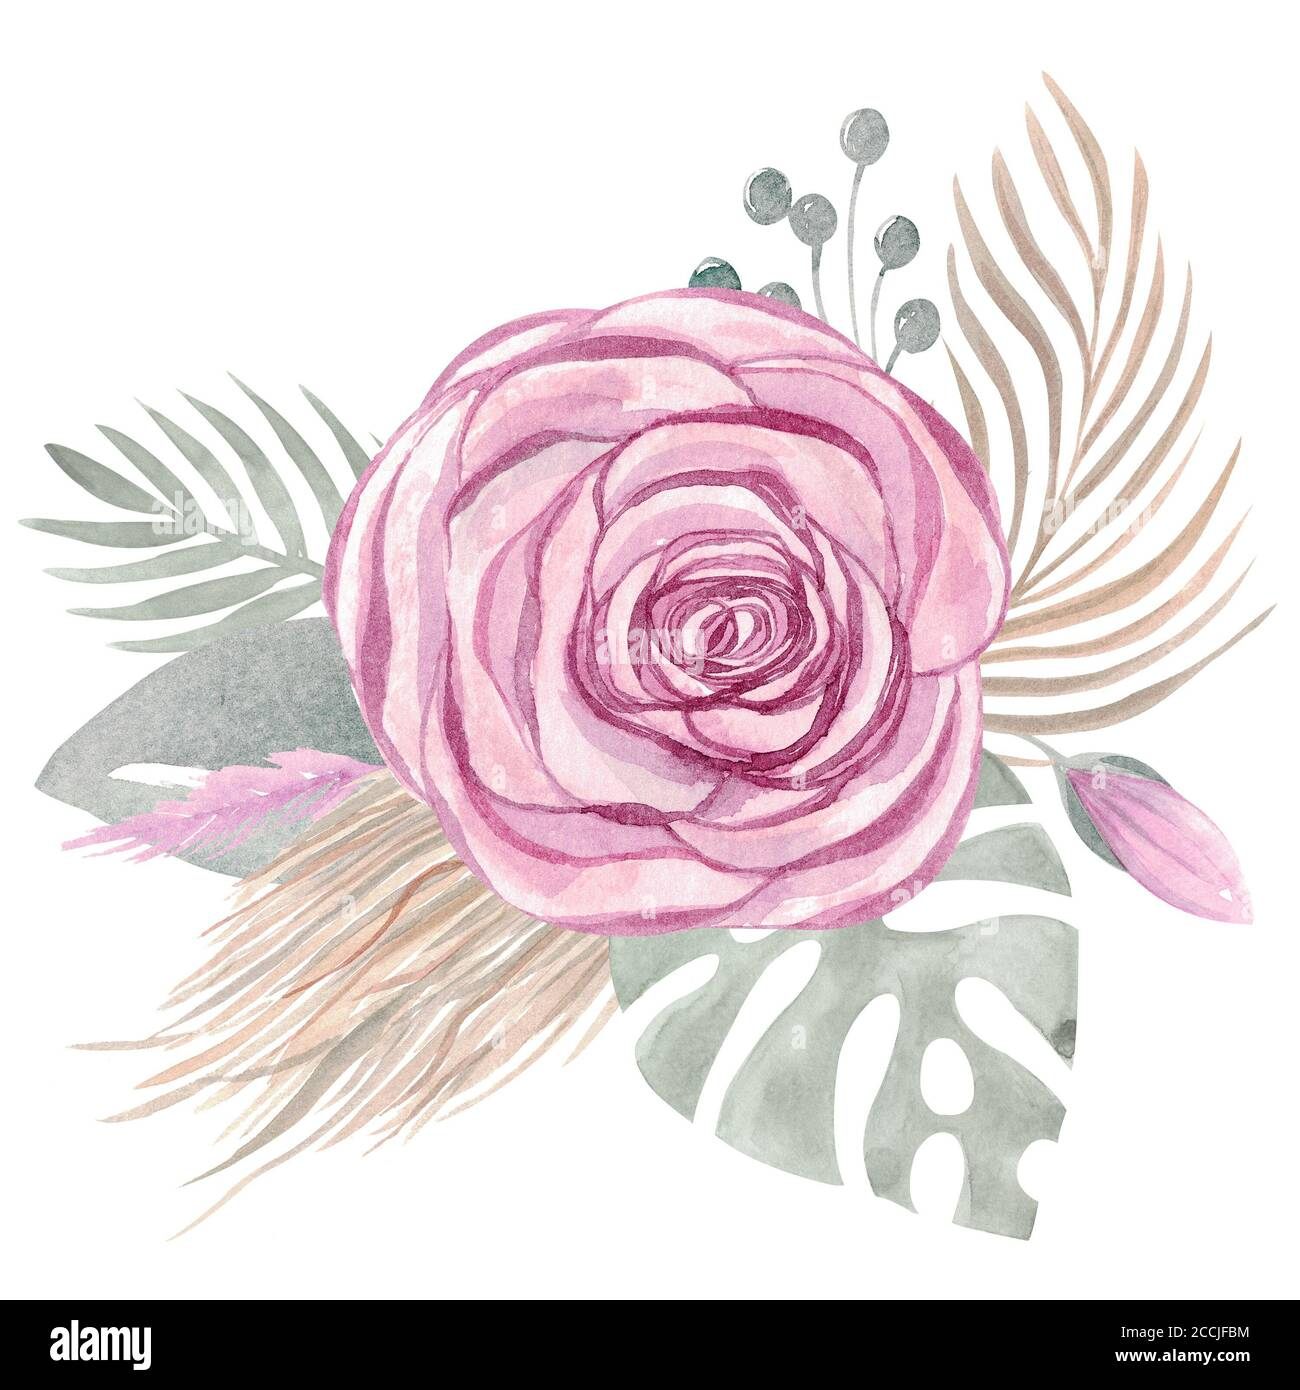 Watercolor Illustration Of A Boho Bouquet Of Tropical Leaves Flowers Roses Floral Arrangement Wedding Design Stock Photo Alamy